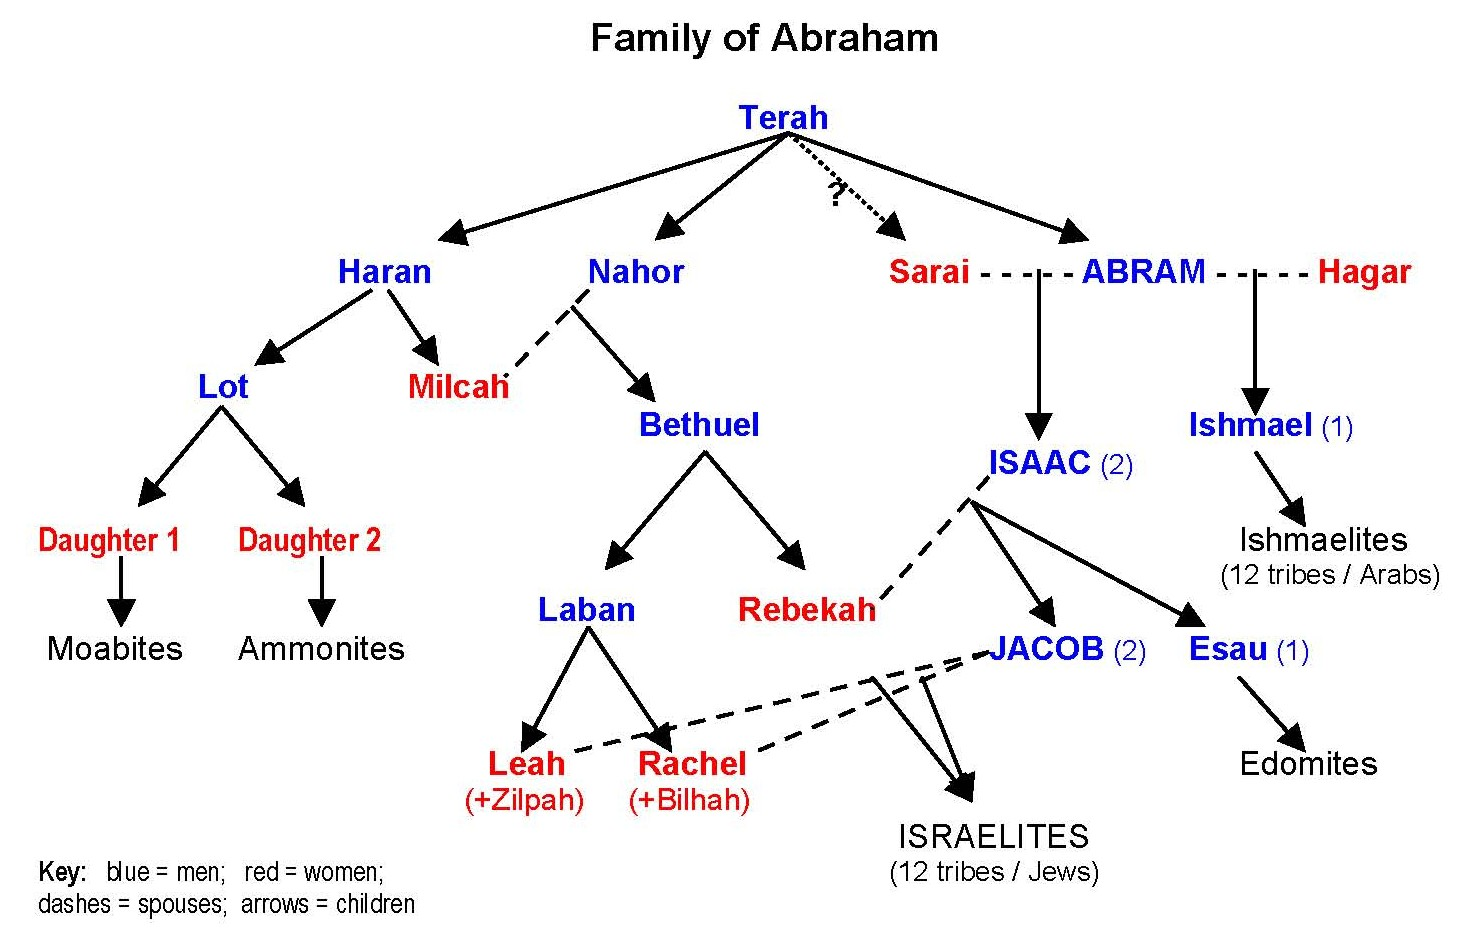 Chart Showing the Family of Abraham